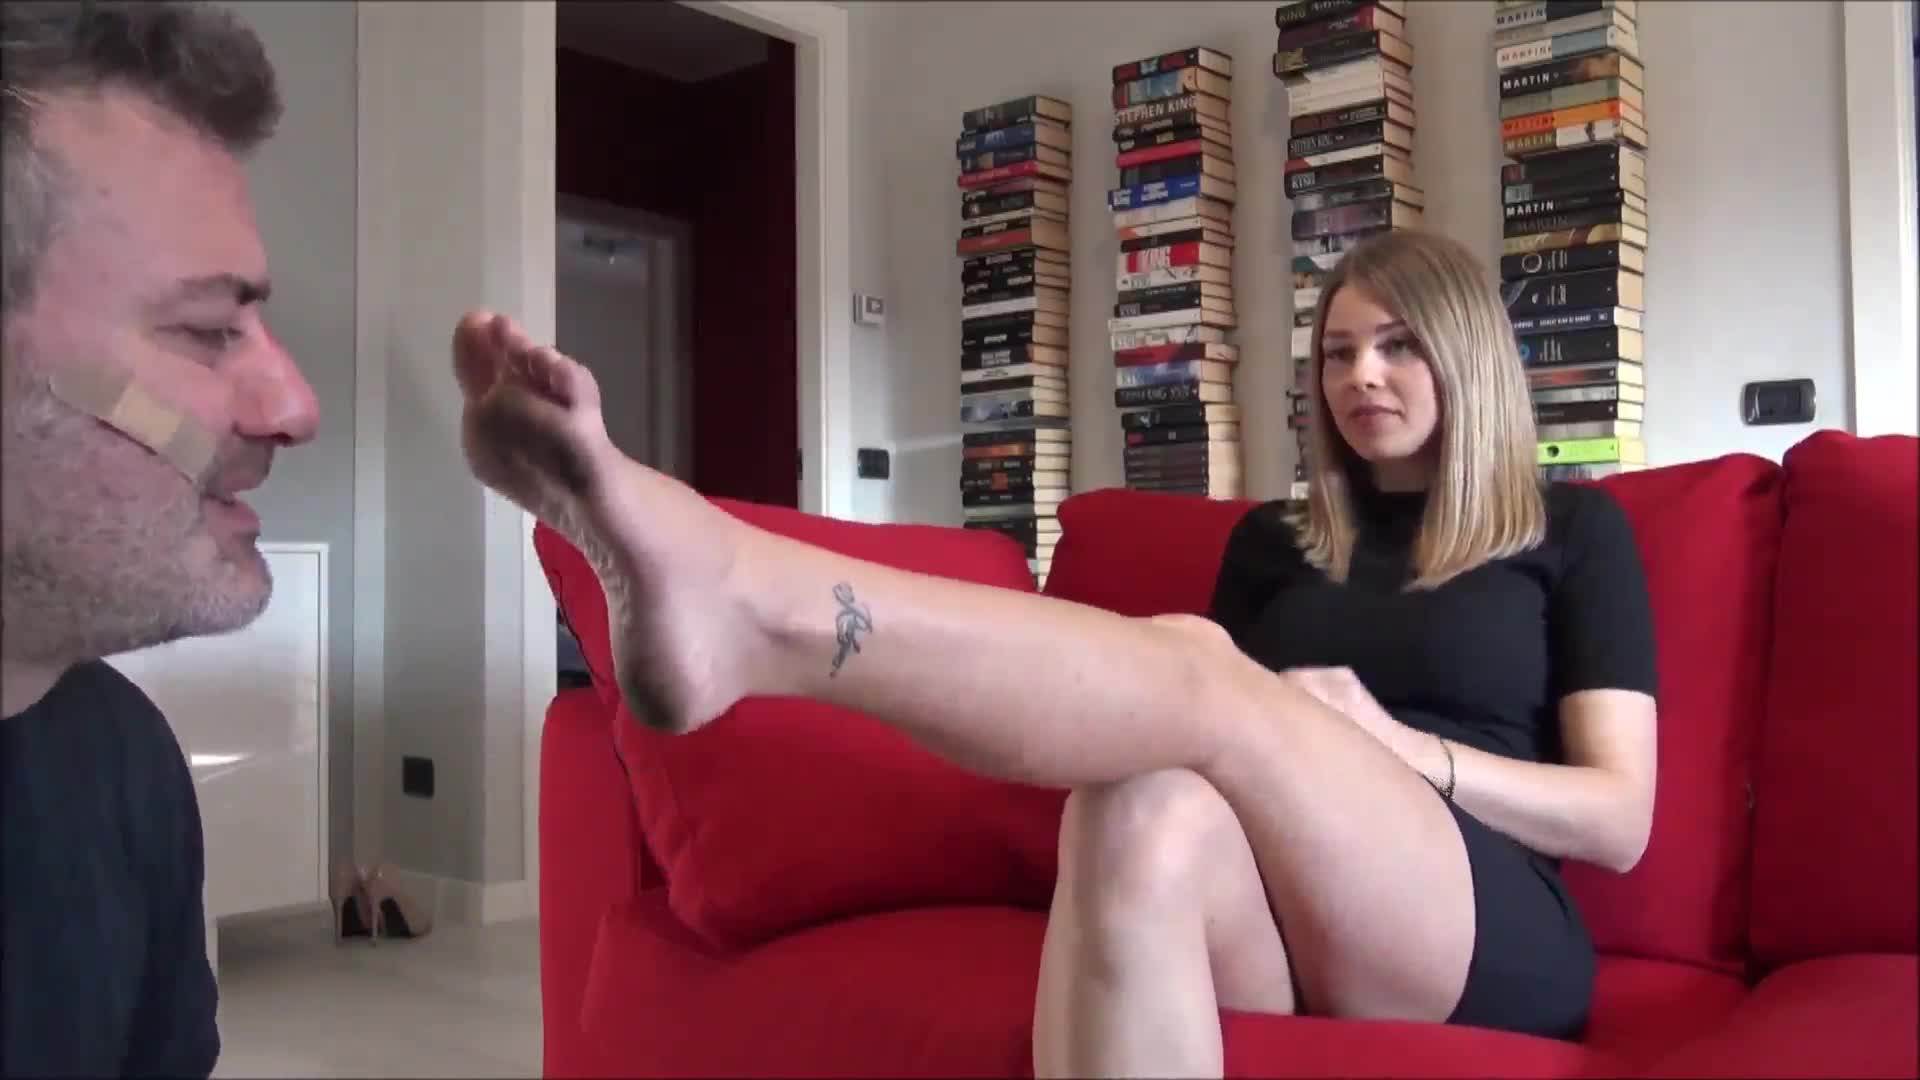 The foot slave kneels and licks the goddess's dirty feet